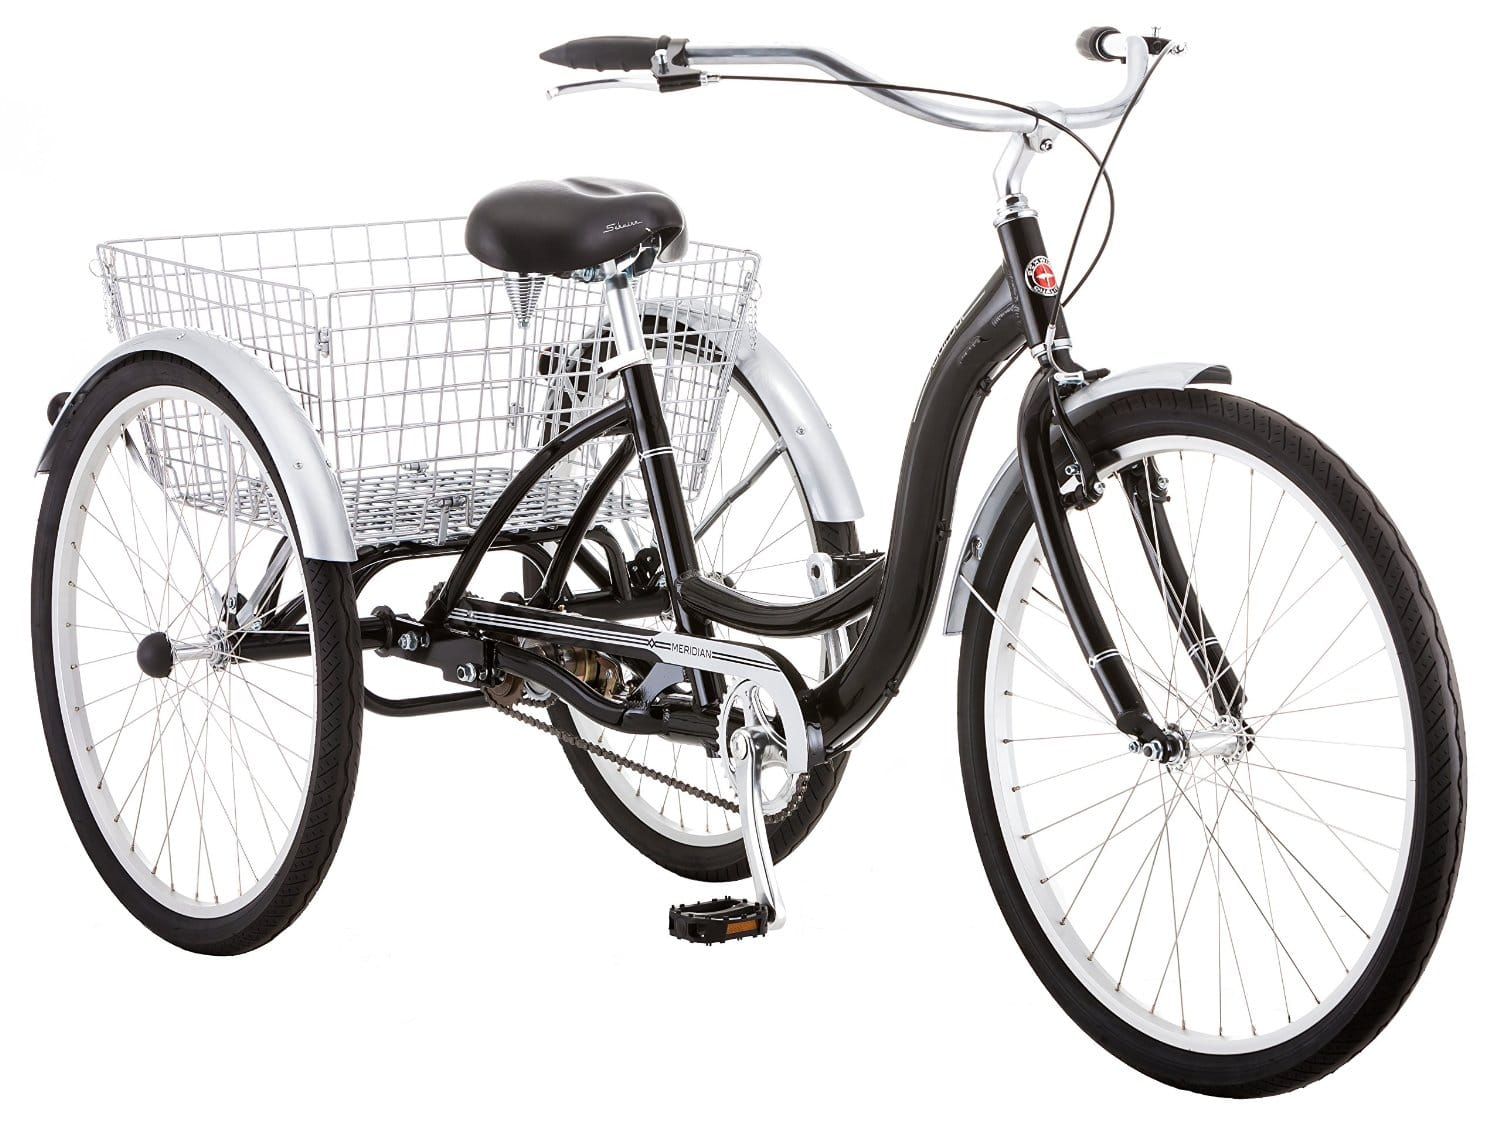 Best Adult Tricycles 2017 - Buyer's Guide (August. 2017)